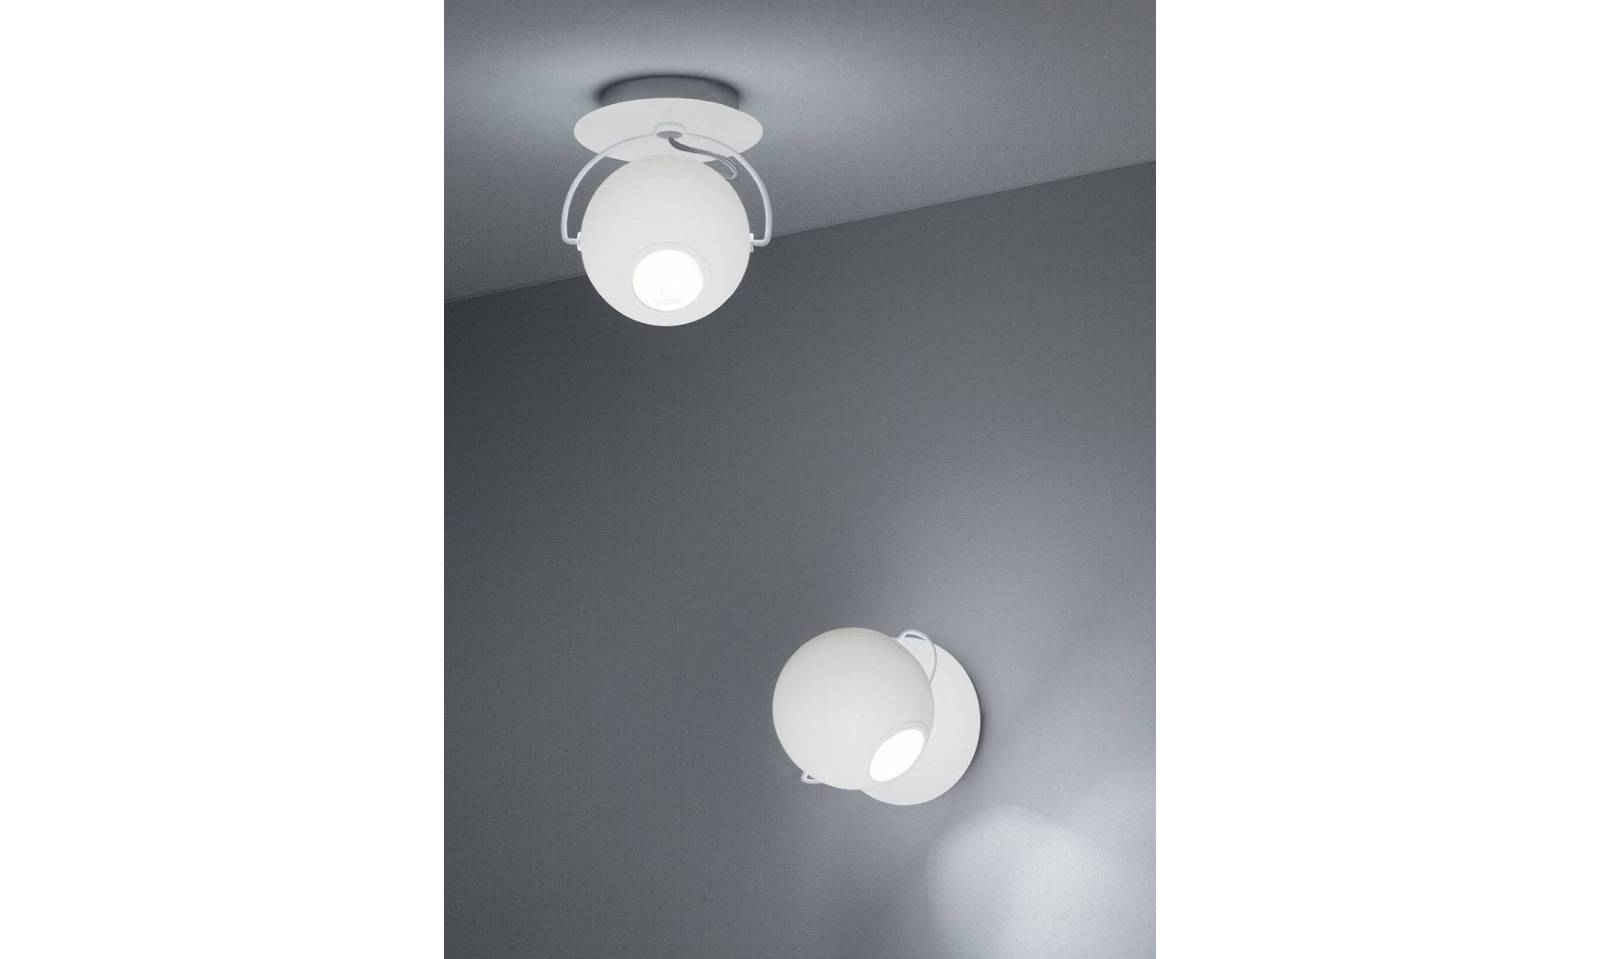 Sikrea applique moderno led in metallo serie iole